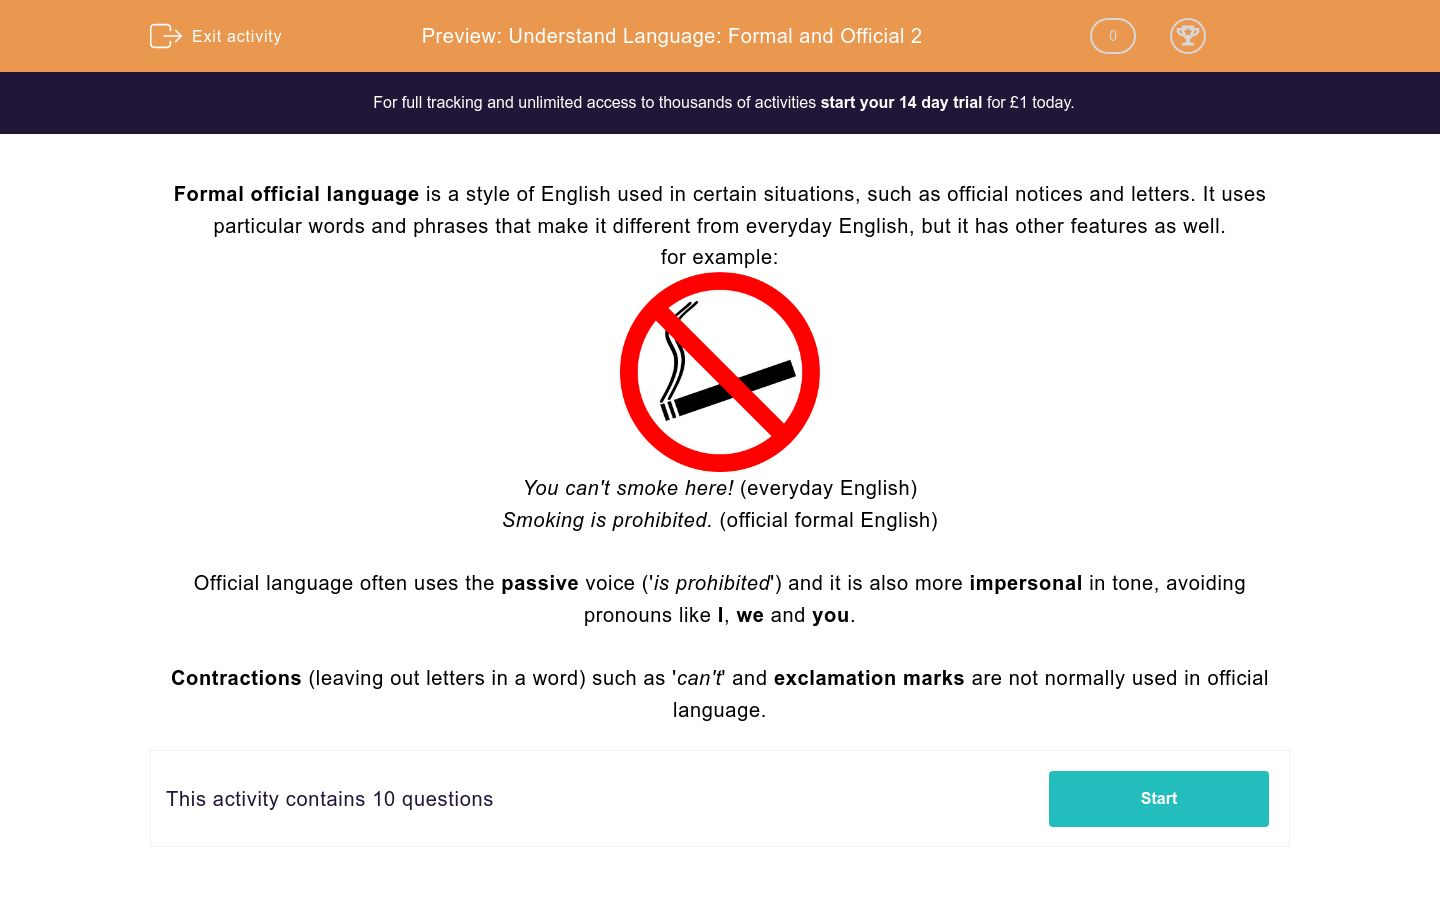 'Understand Language: Formal and Official 2' worksheet